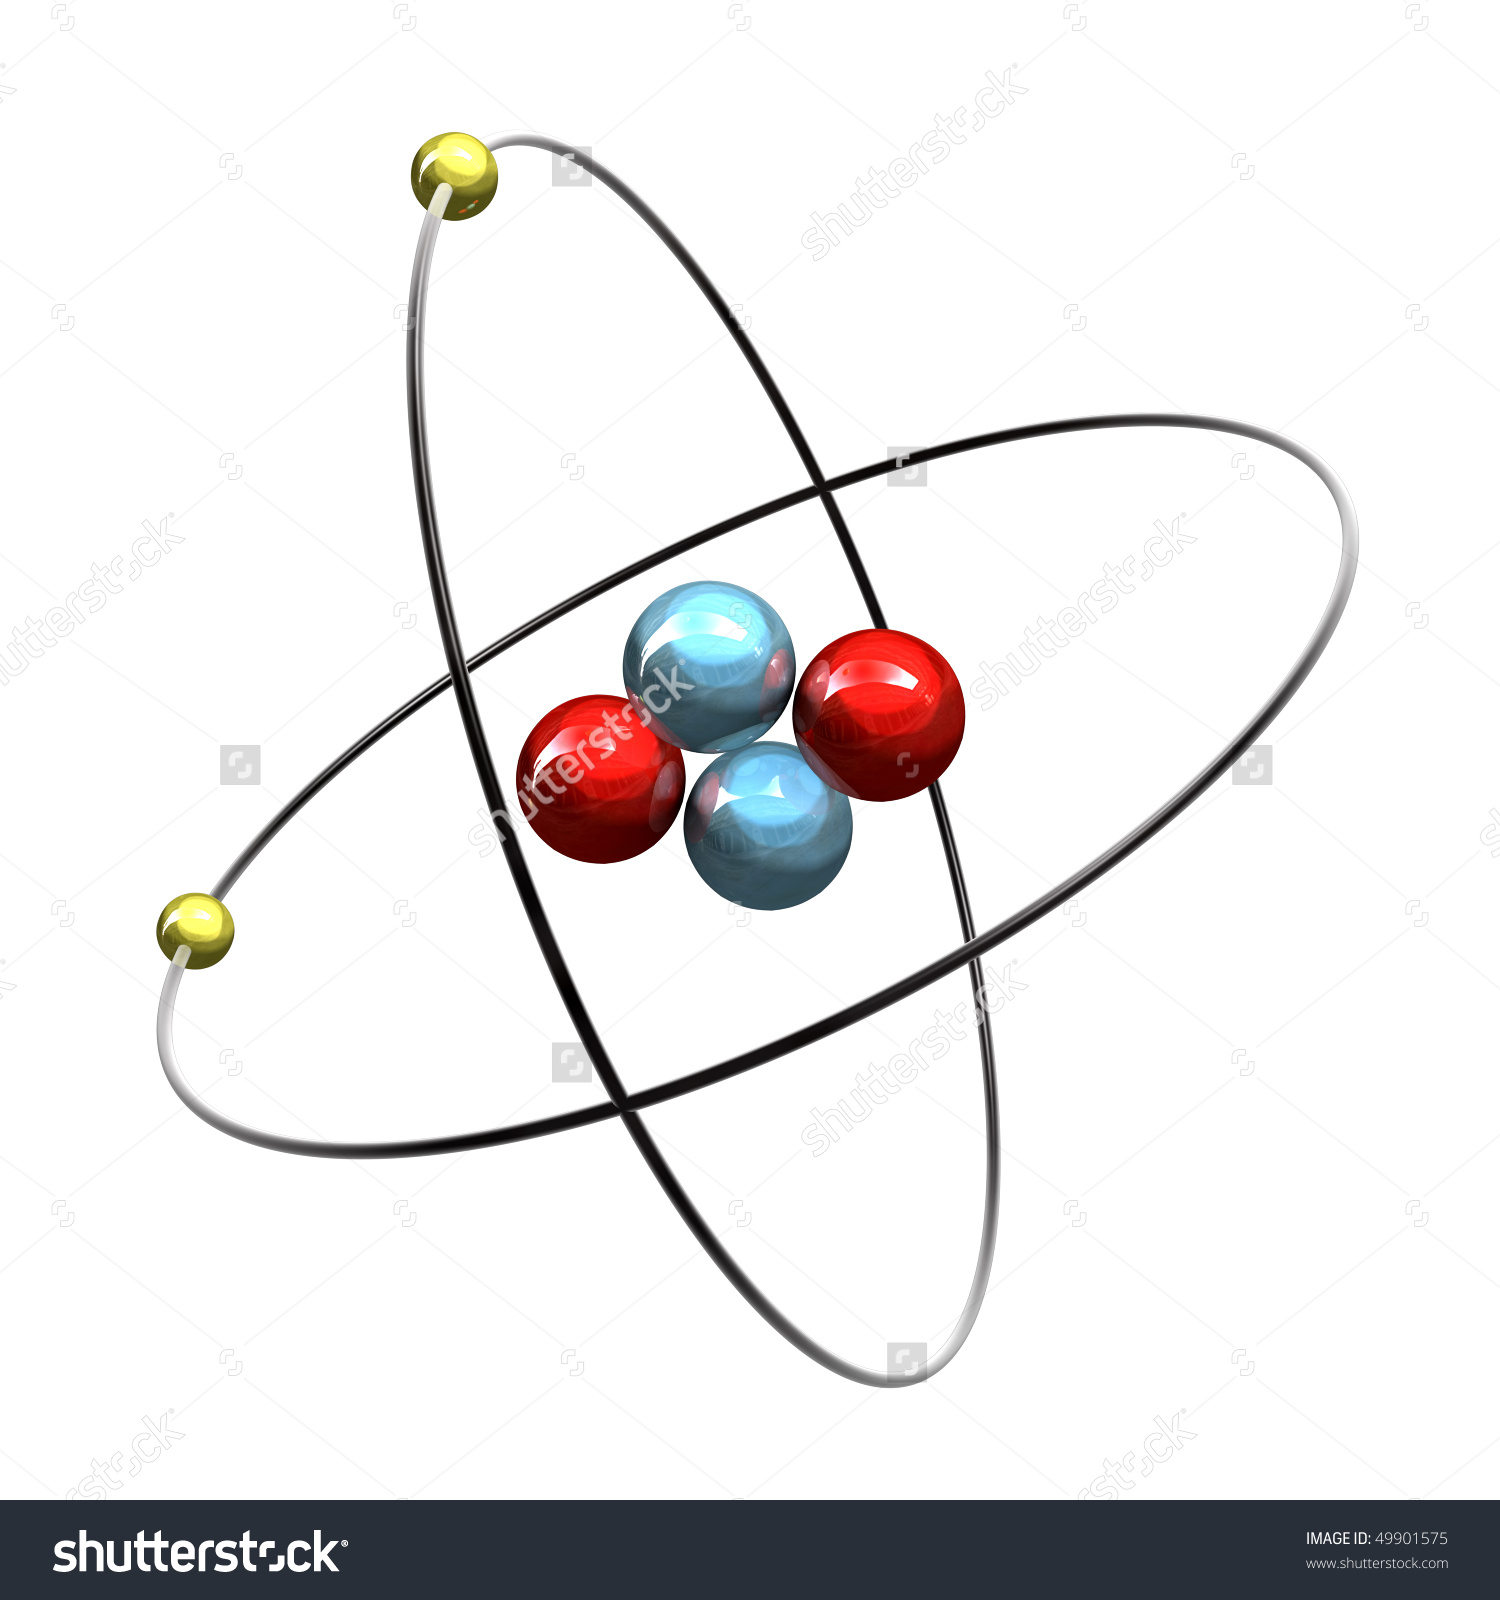 Oxygen Atom Structure Diagram Stock Photo Helium Search For Wiring Diagrams Drawing At Getdrawings Com Free Personal Use Rh Nitrogen Beryllium